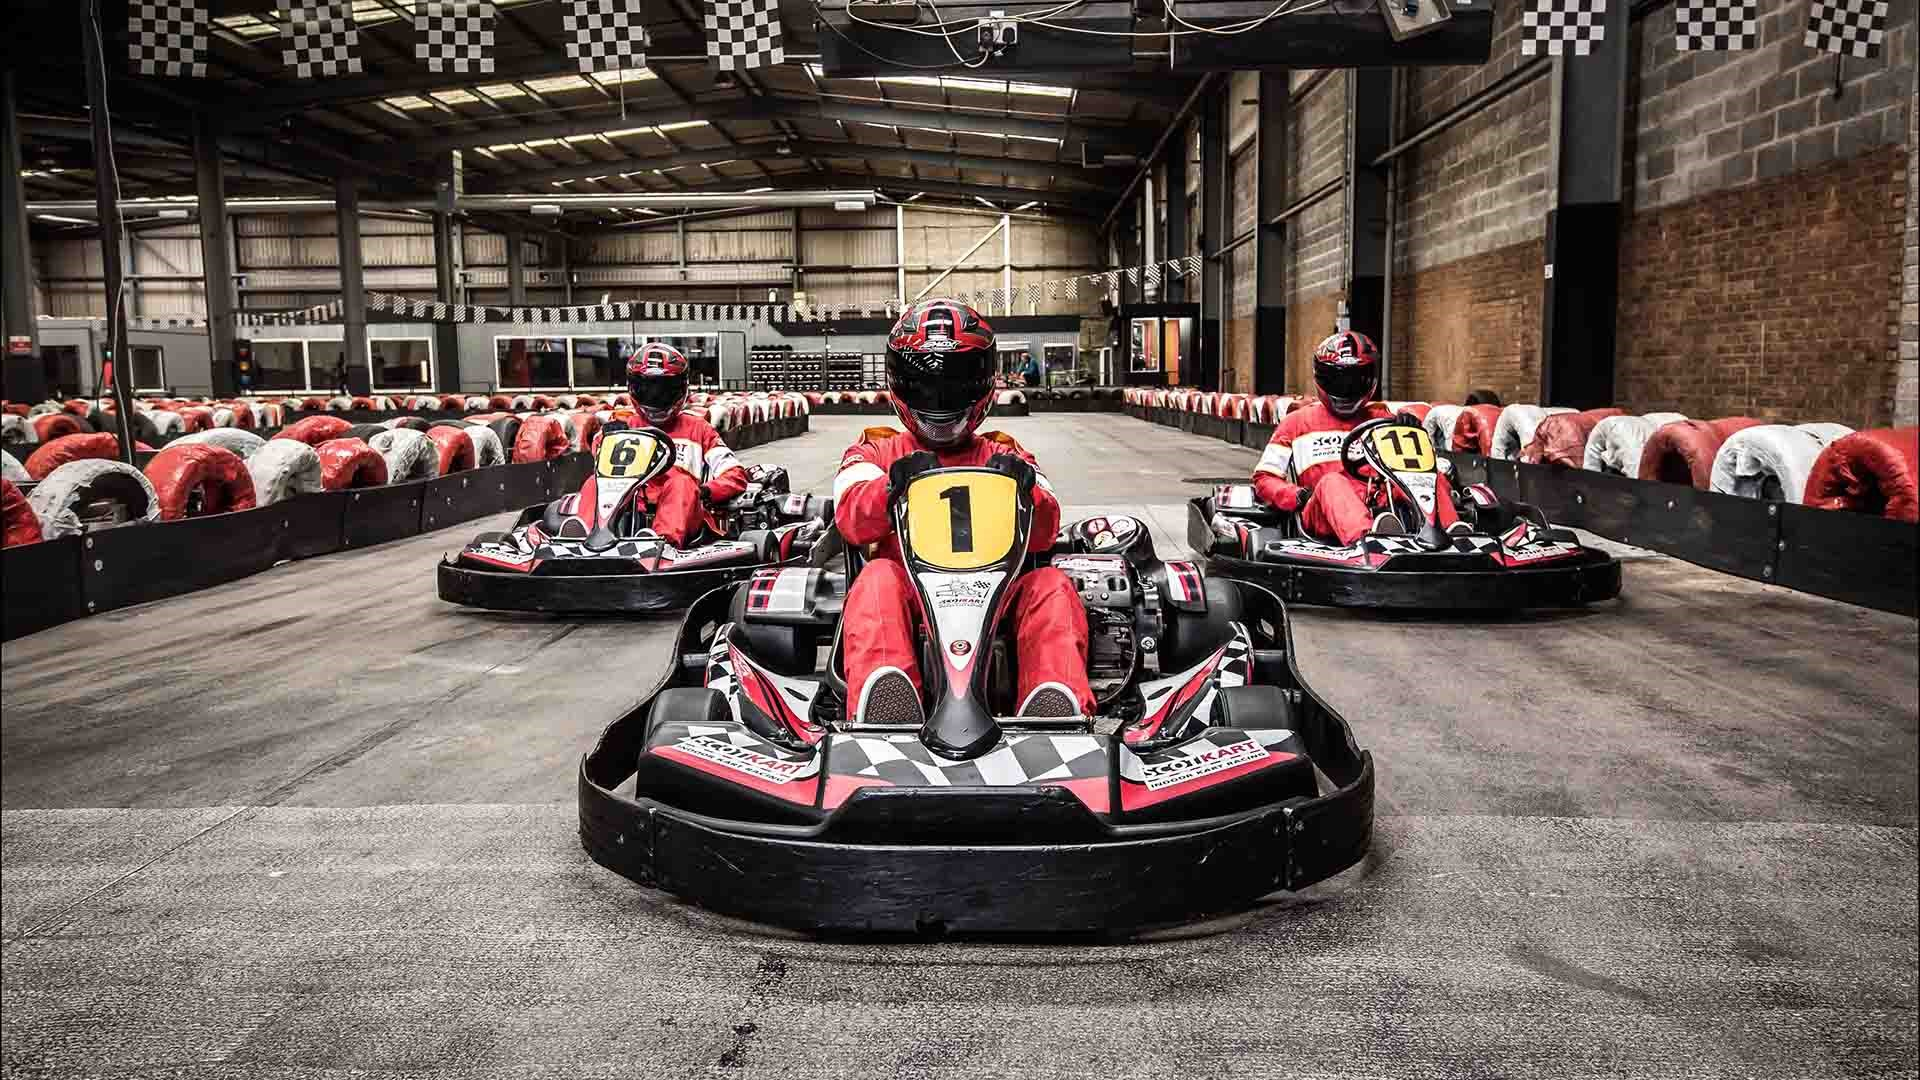 UNBELIEVABLE GO KARTING OFFERS - 4 for 3 on Race Sessions